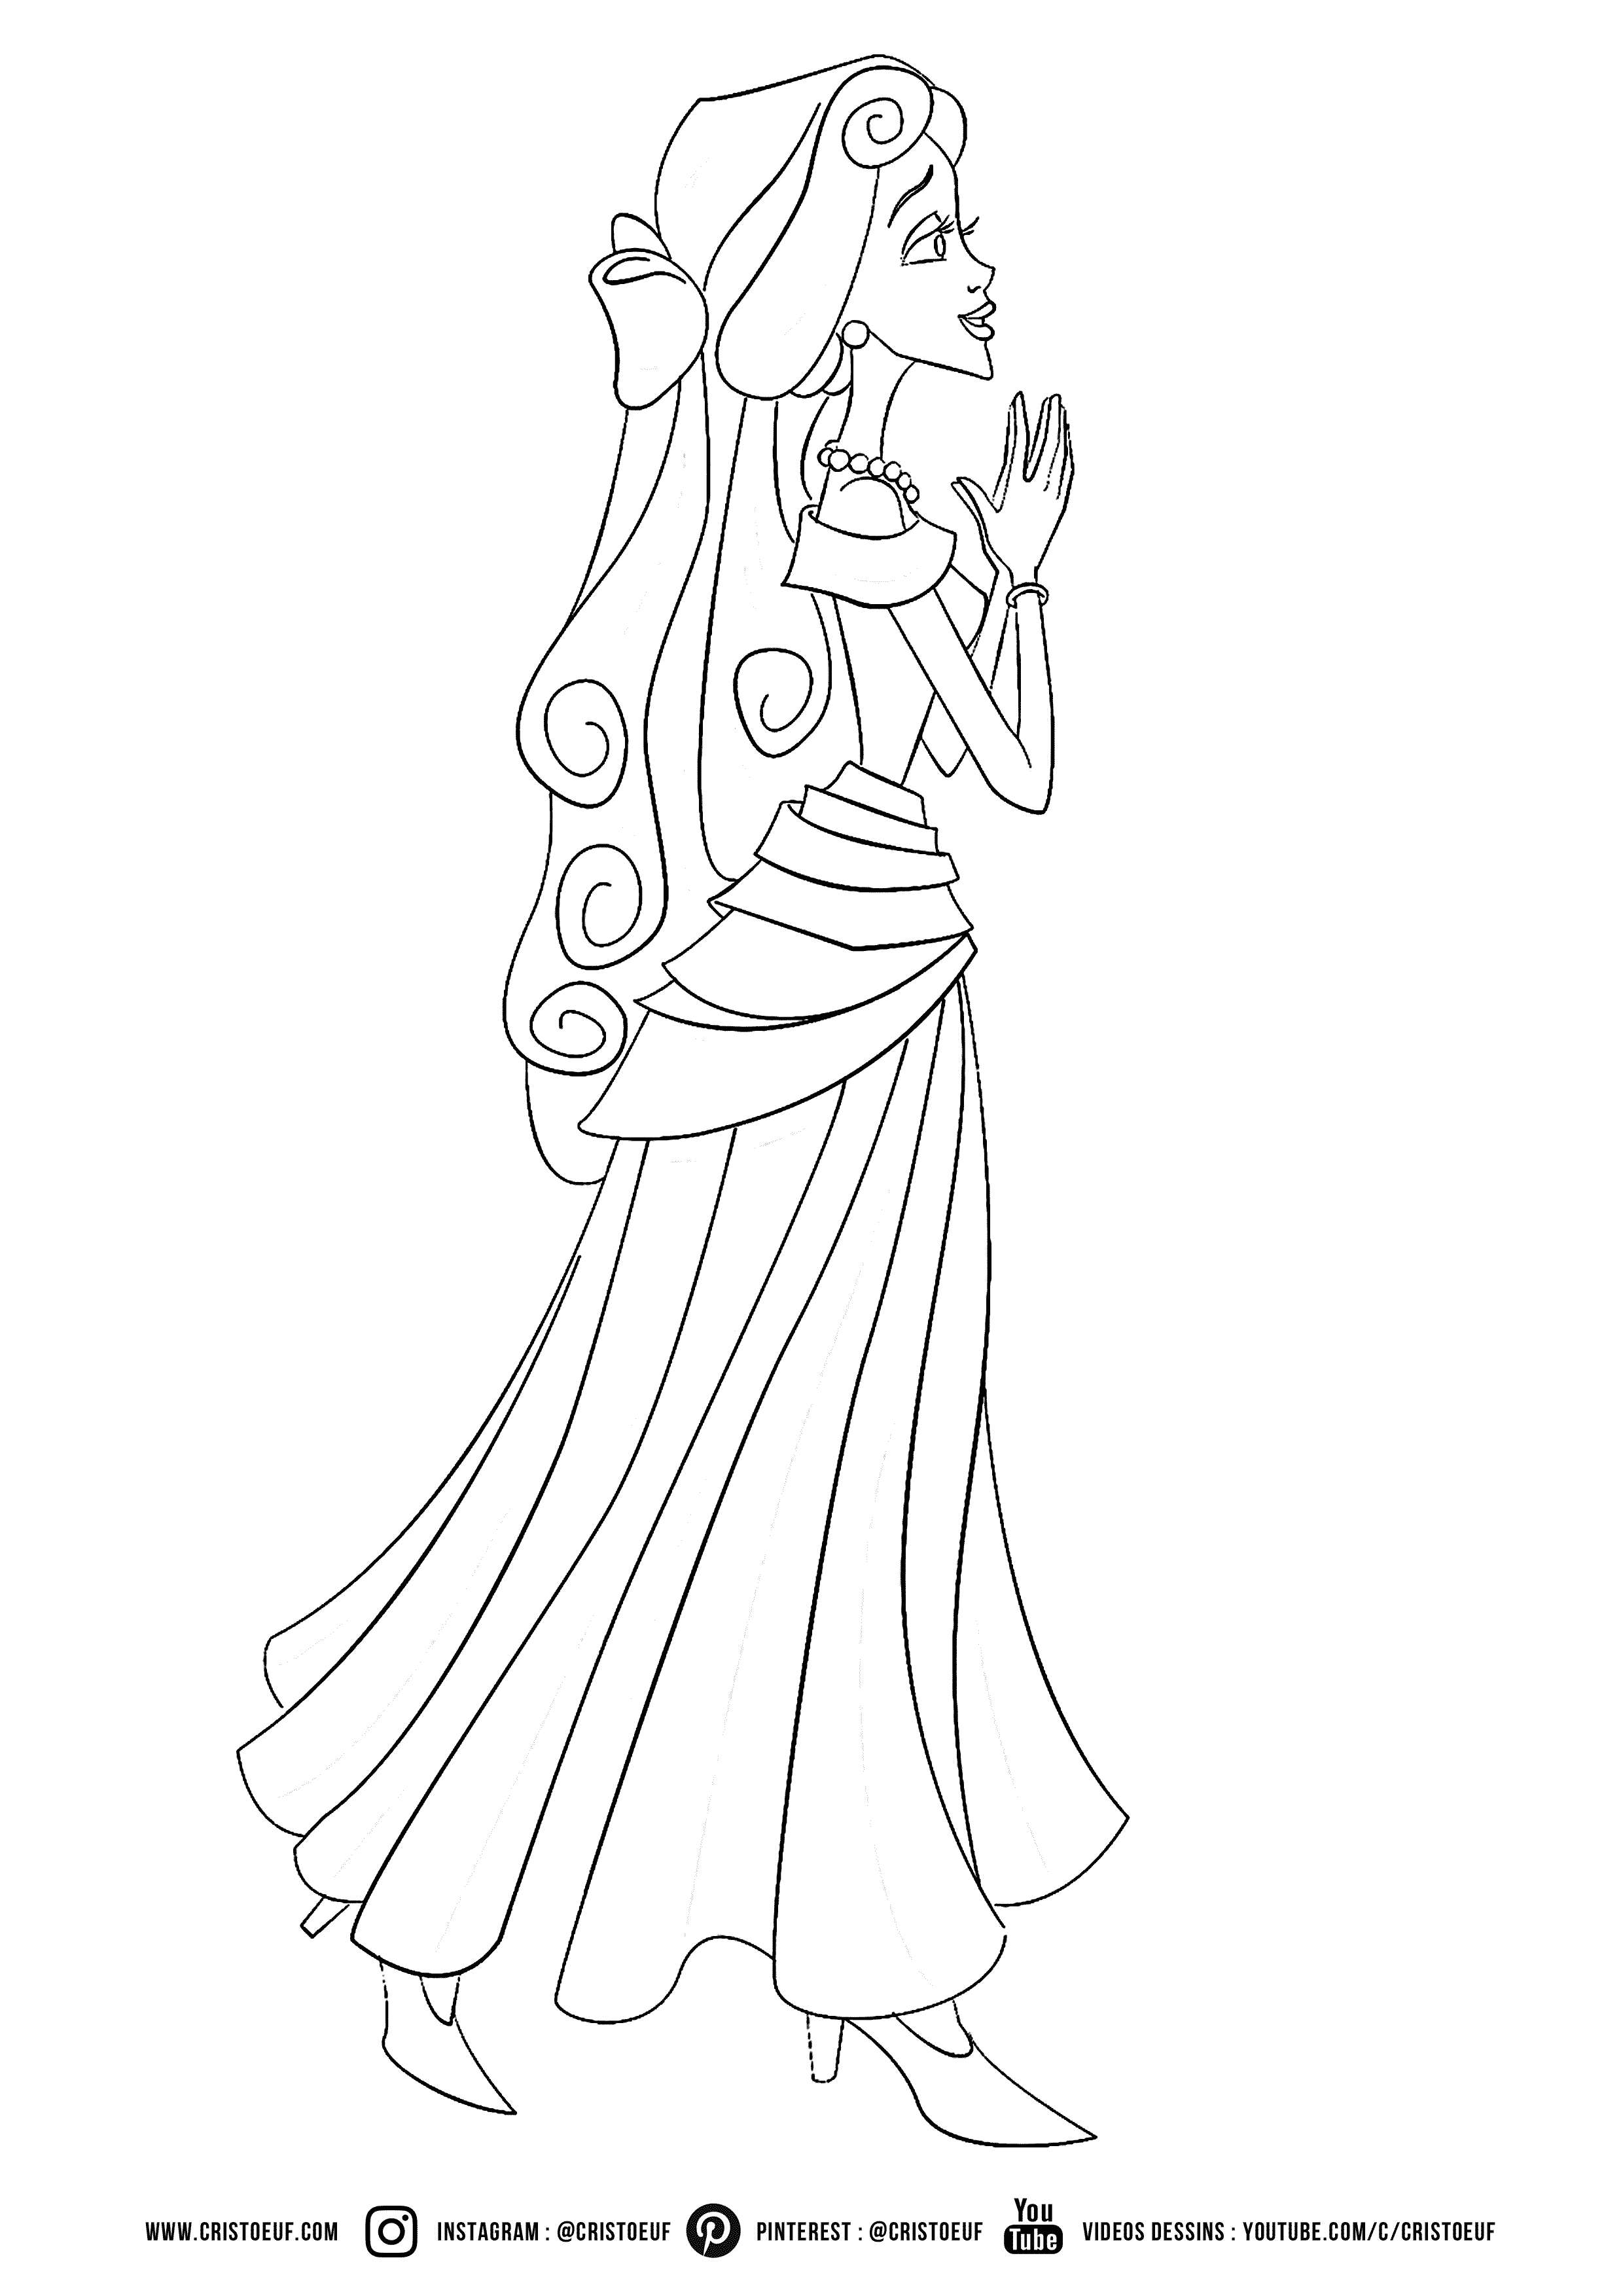 Colouring for Kids - Princess  Coloriage chevalier, Coloriage